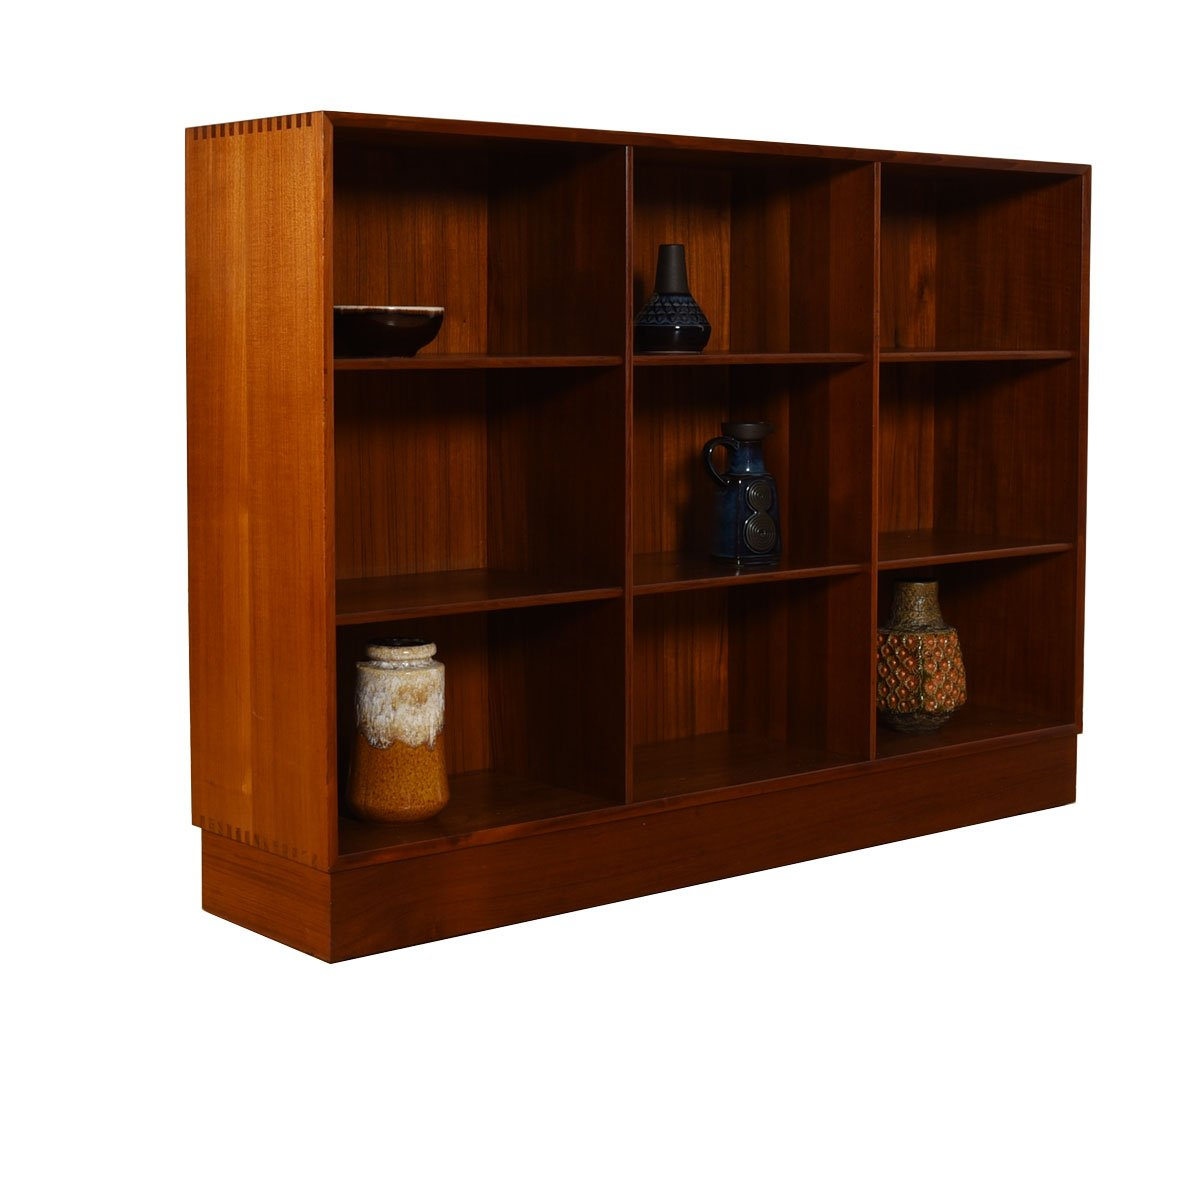 Pair of Solid Teak Danish Bookcases by Peter Hvidt – Rare Size